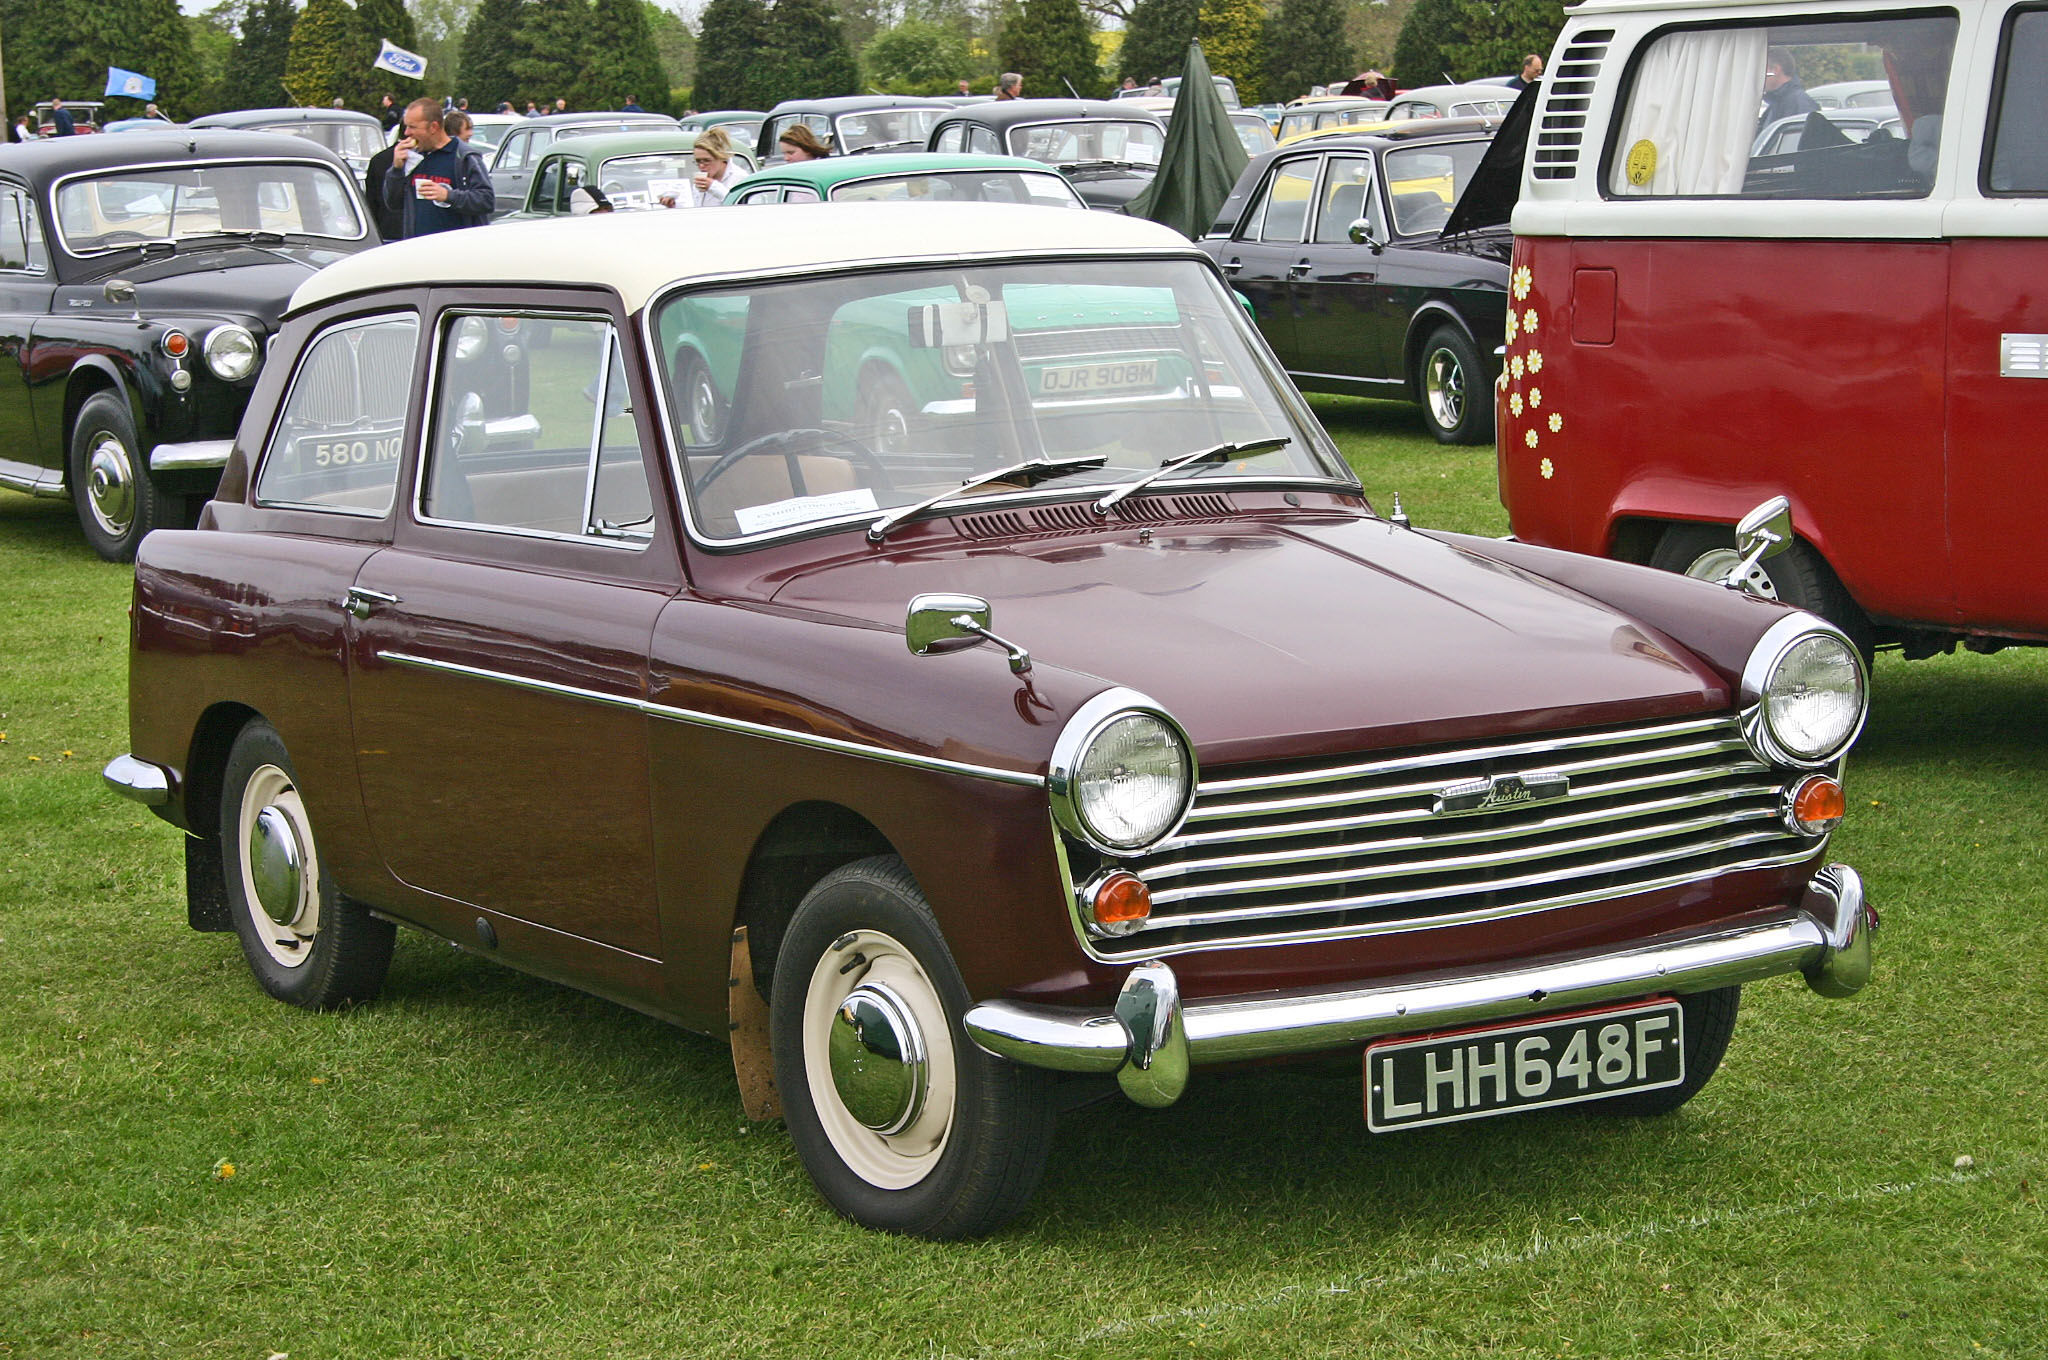 File:Austin A40 MkII front.jpg - Wikimedia Commons